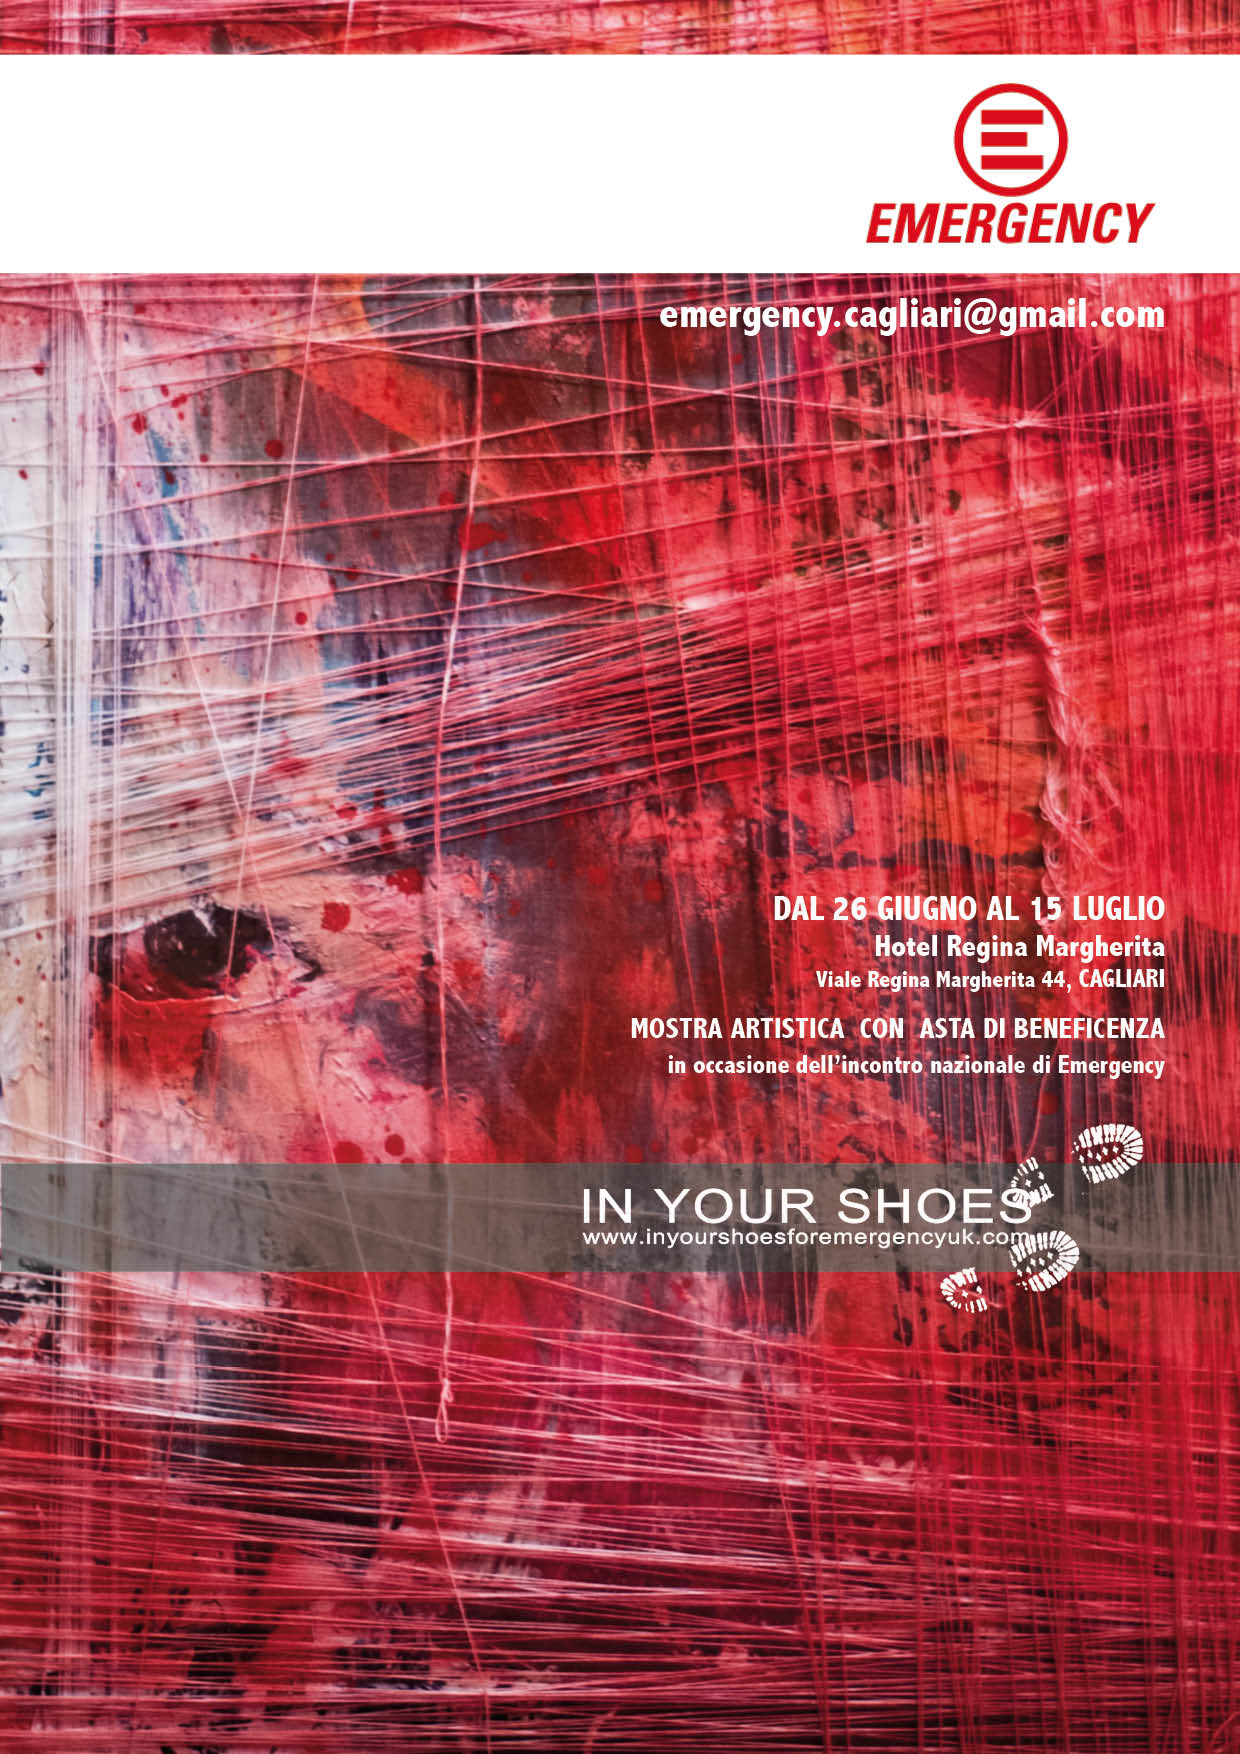 Emergency – In Your Shoes (Emergency UK) (1 image)